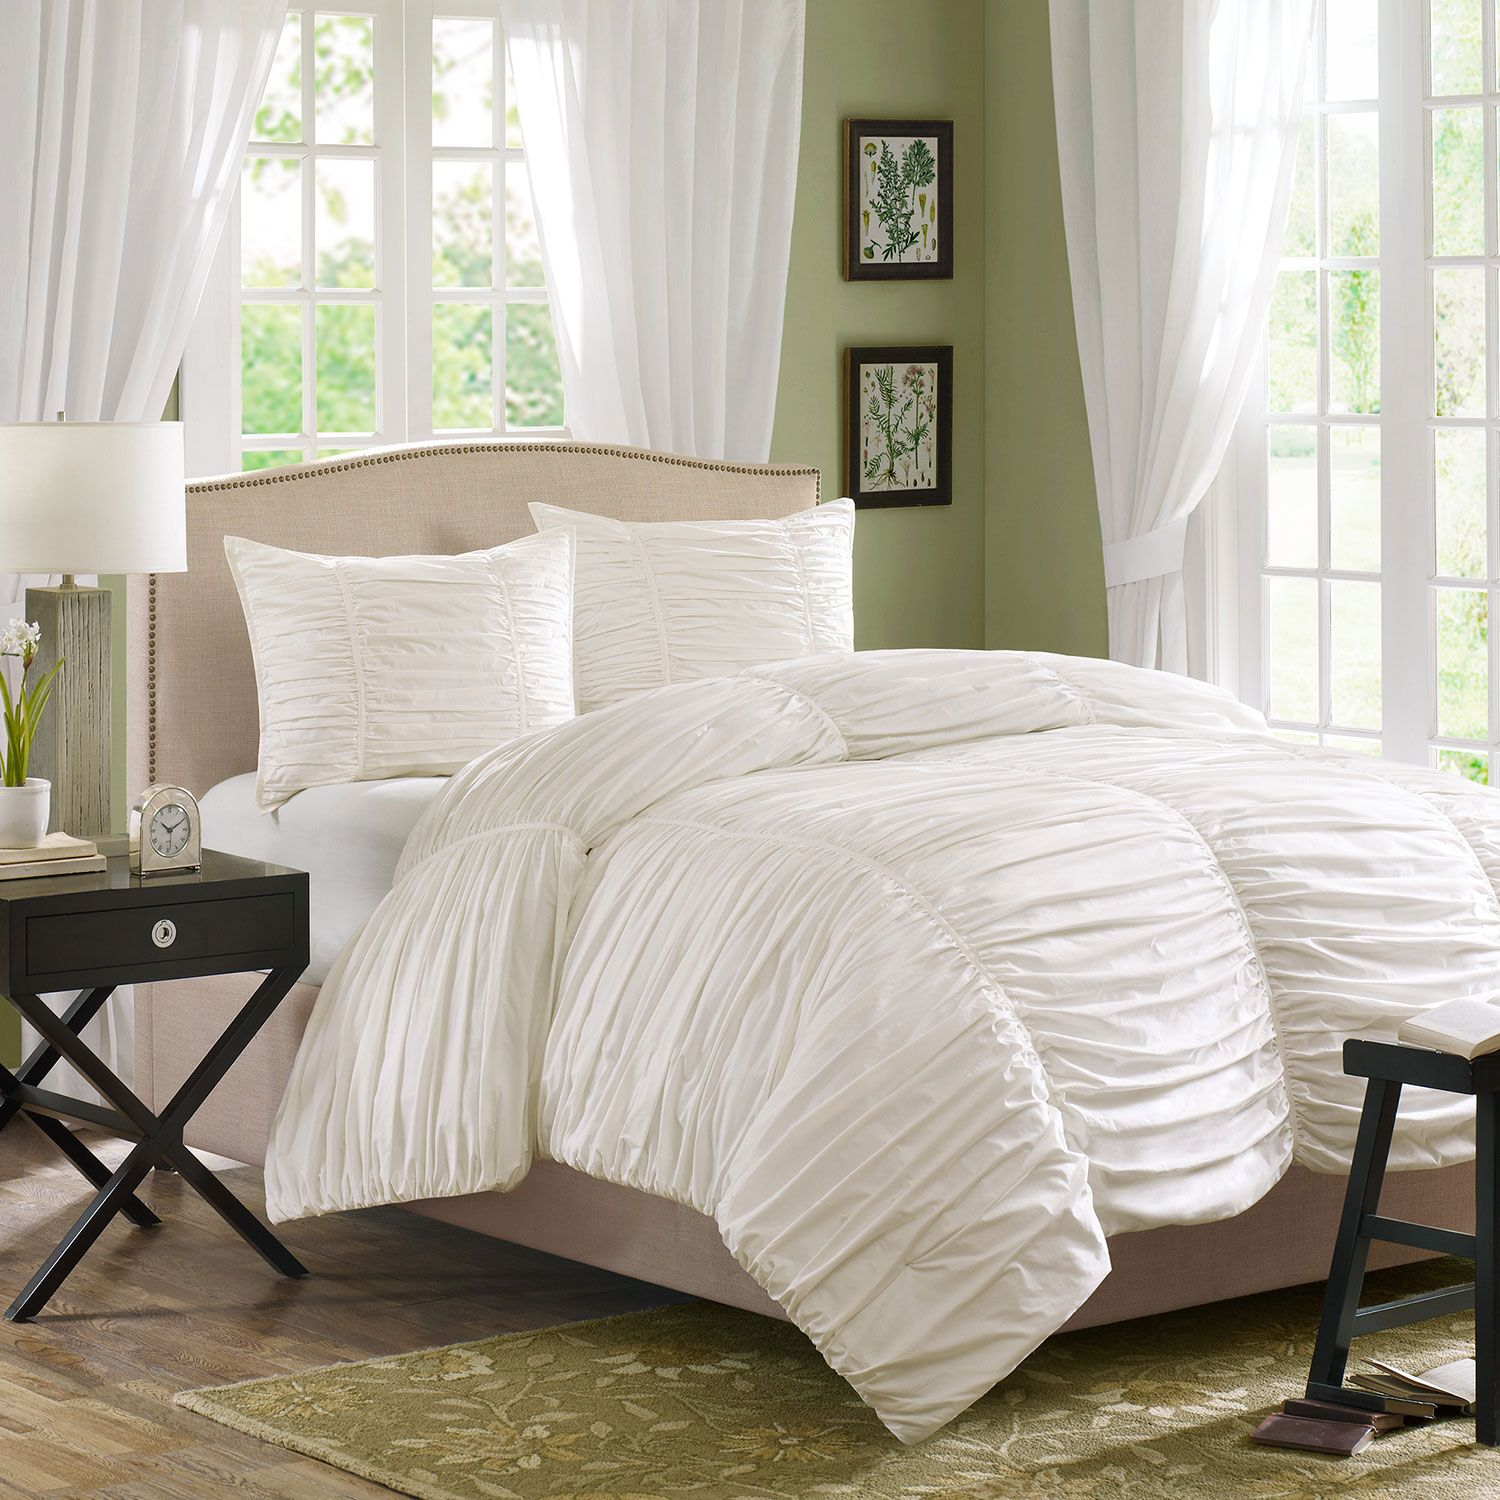 Great white comforter sets for charming bedroom ideas with white comforter sets queen